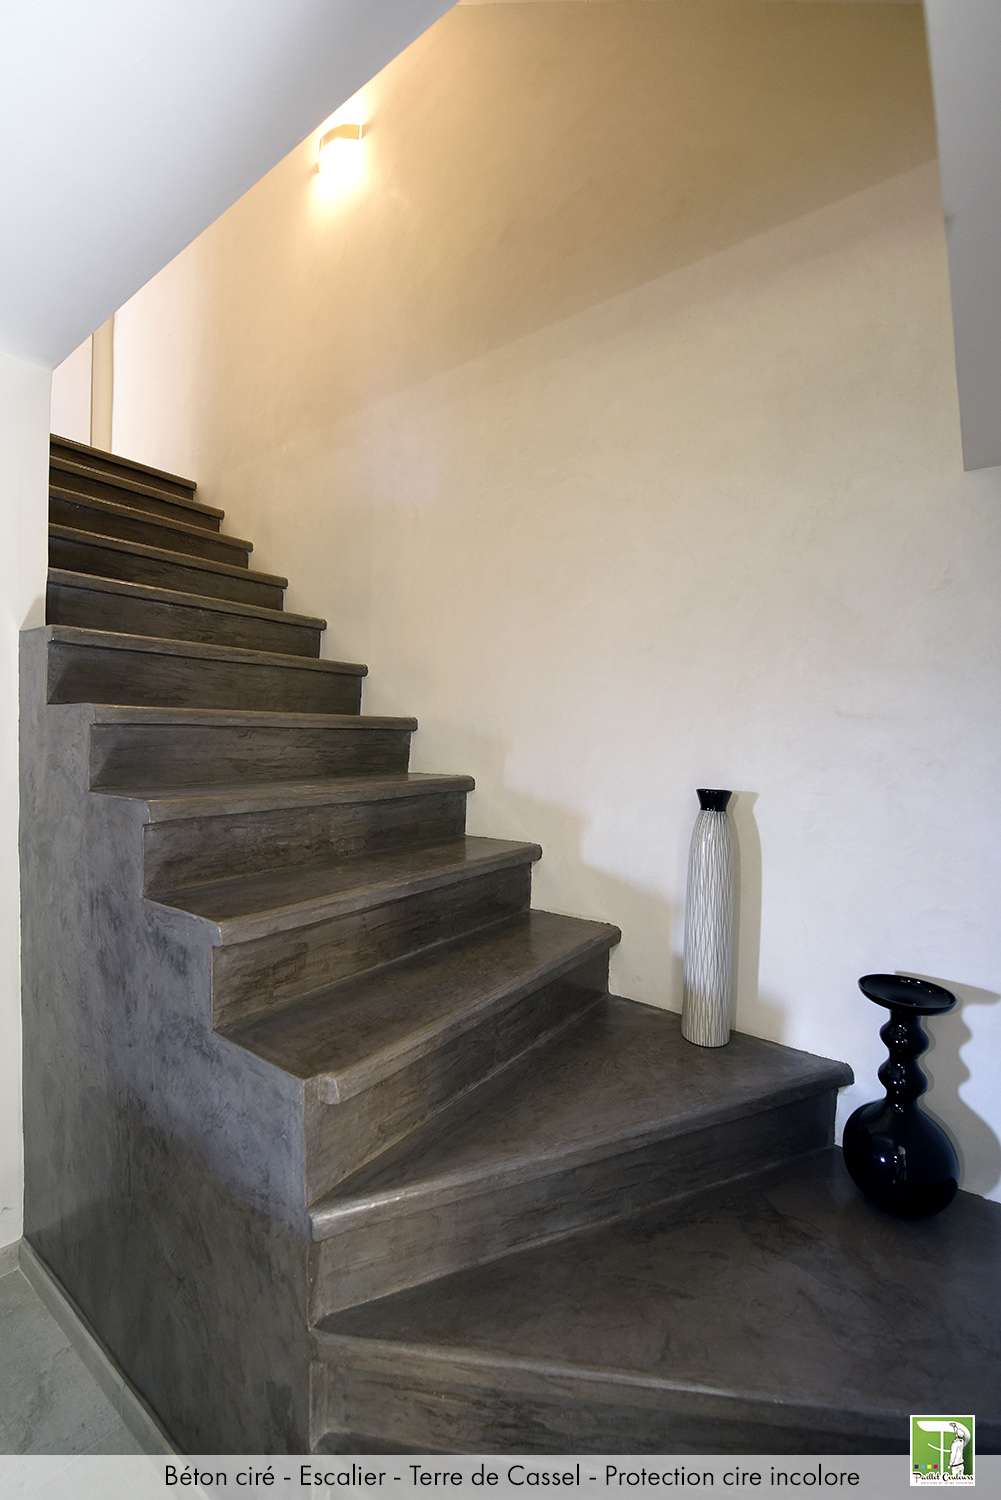 Bton_cir_escalier_Terre_de_Cassel_protection_cire_incolore